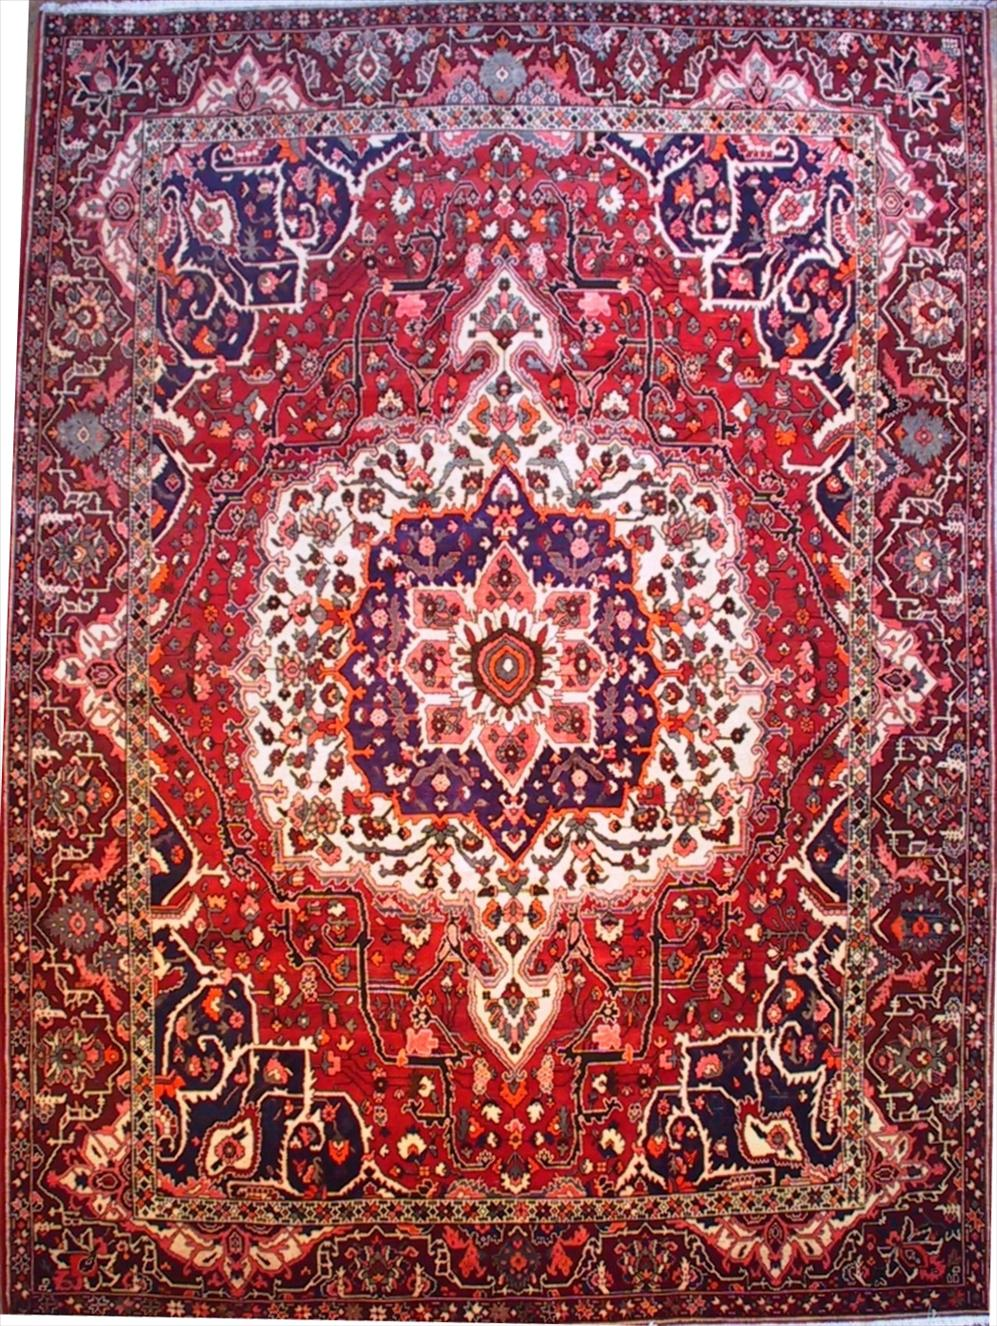 Amazing 684 Bakhtiari rugs - This Traditional rug is approx imately 10 feet 1 red persian rug